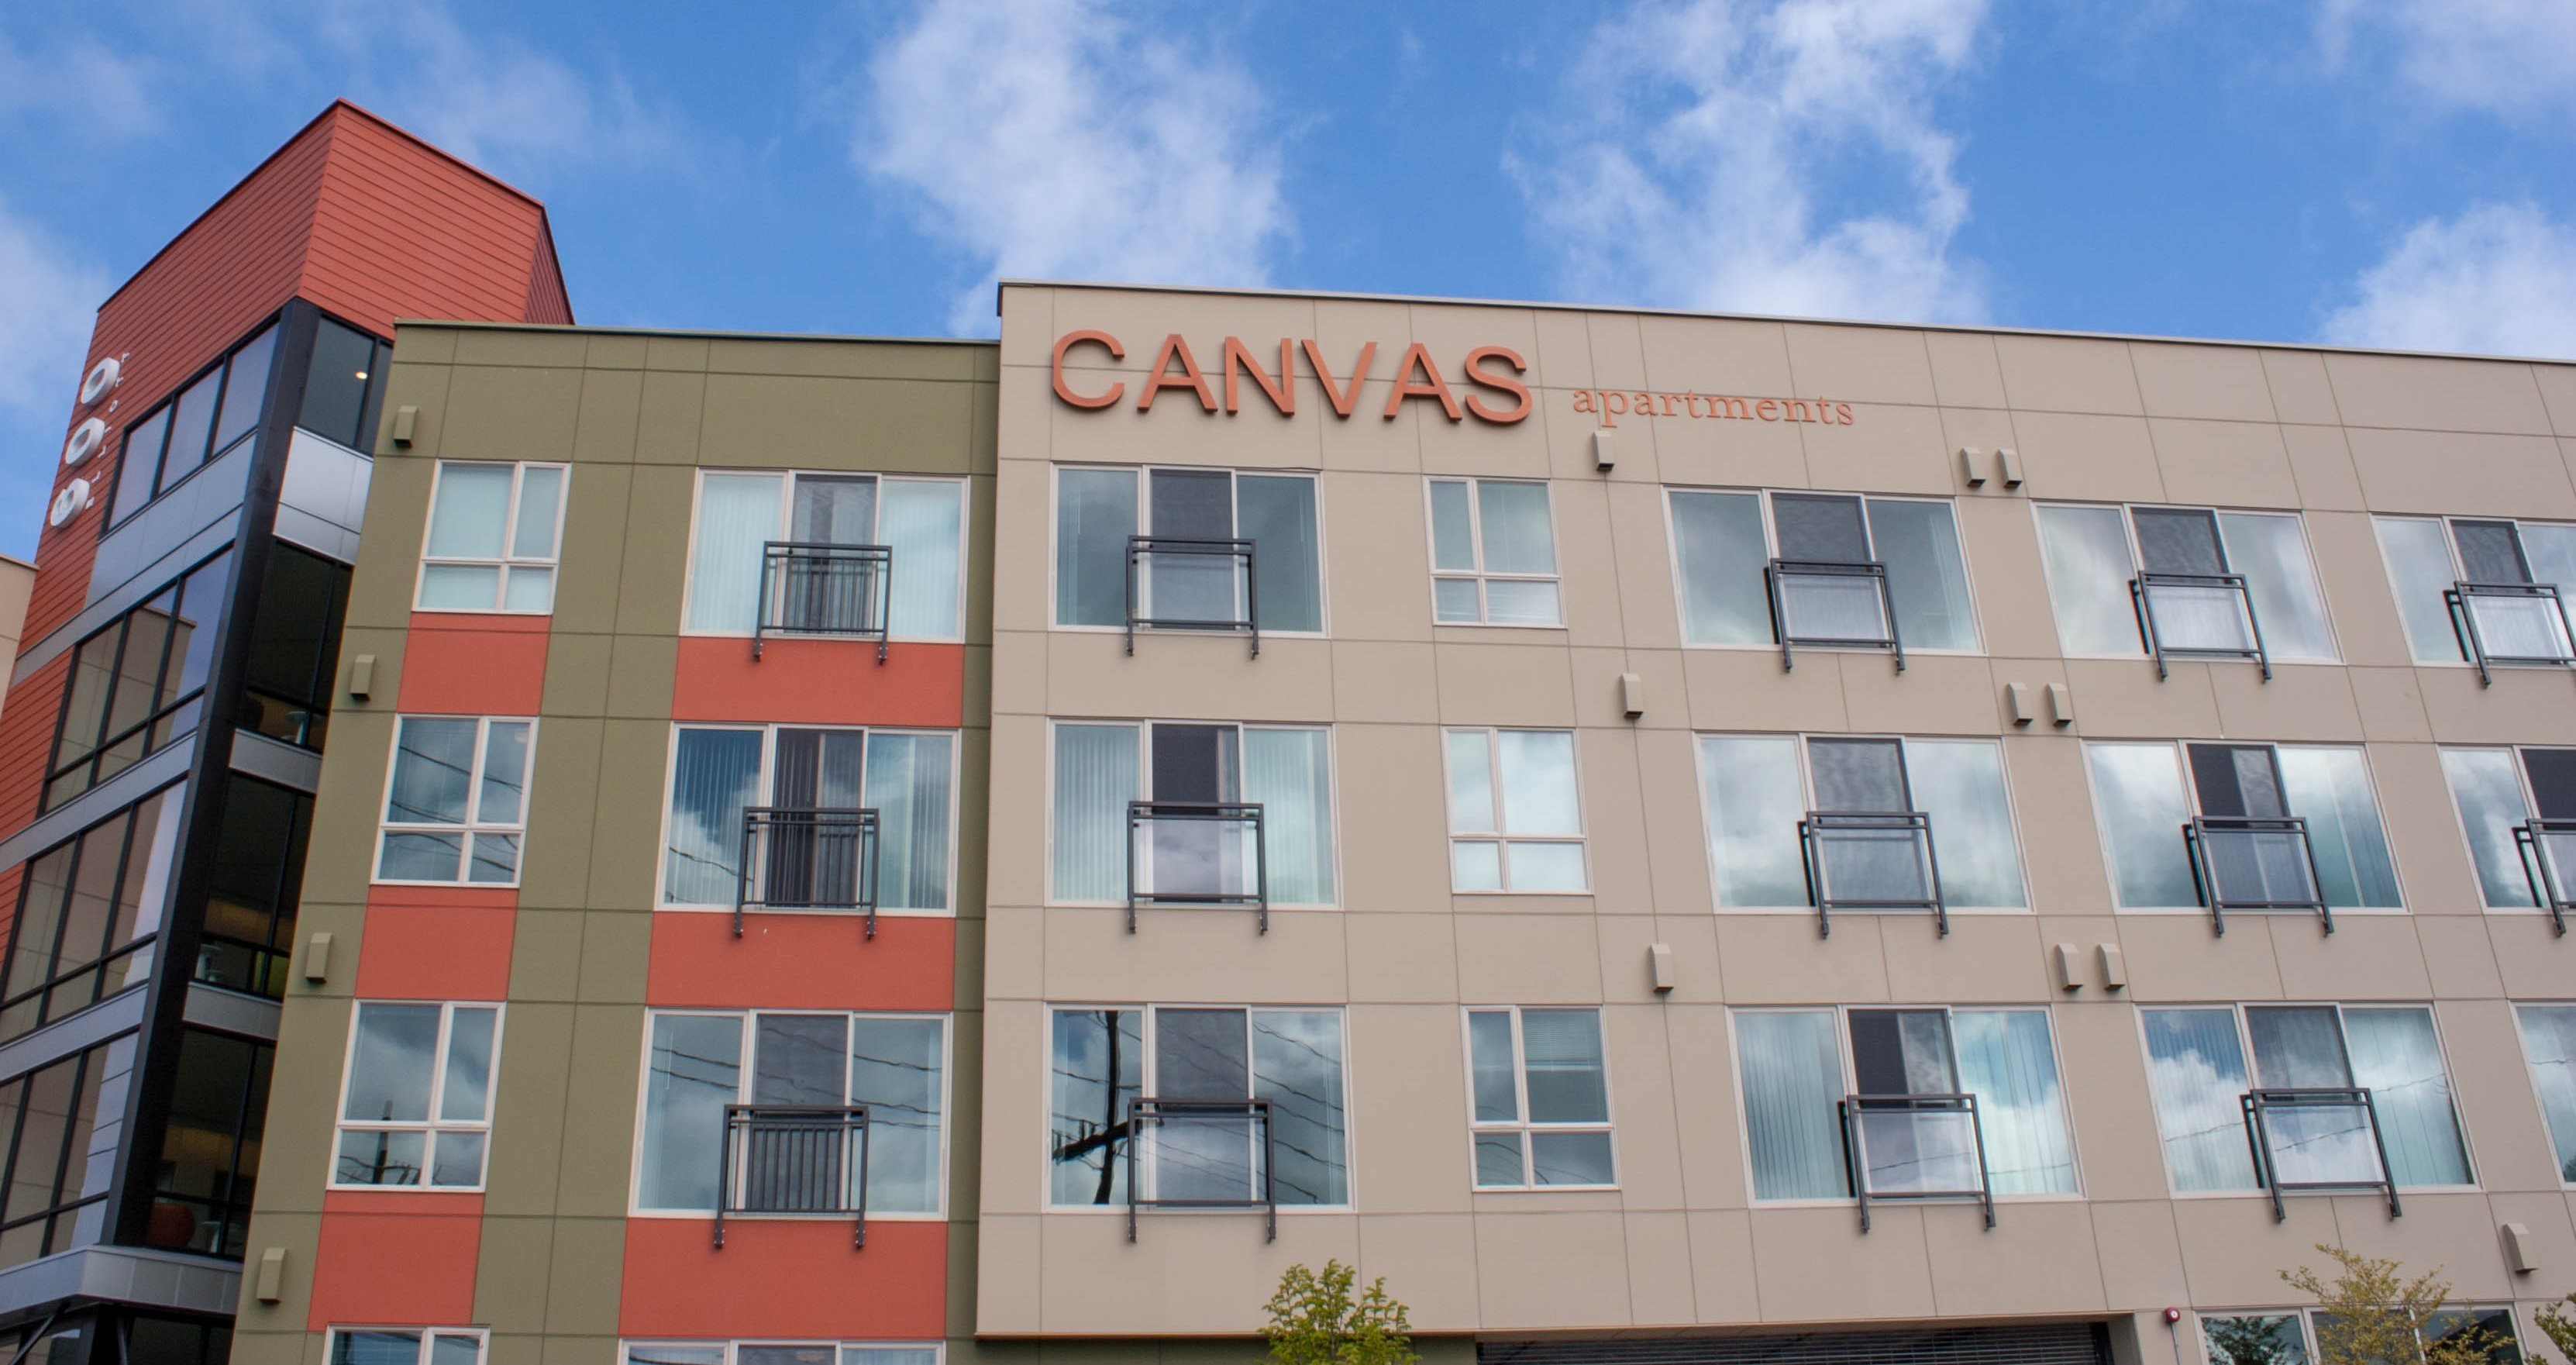 Apartments in seattle wa canvas apartments - Best apartments in seattle ...